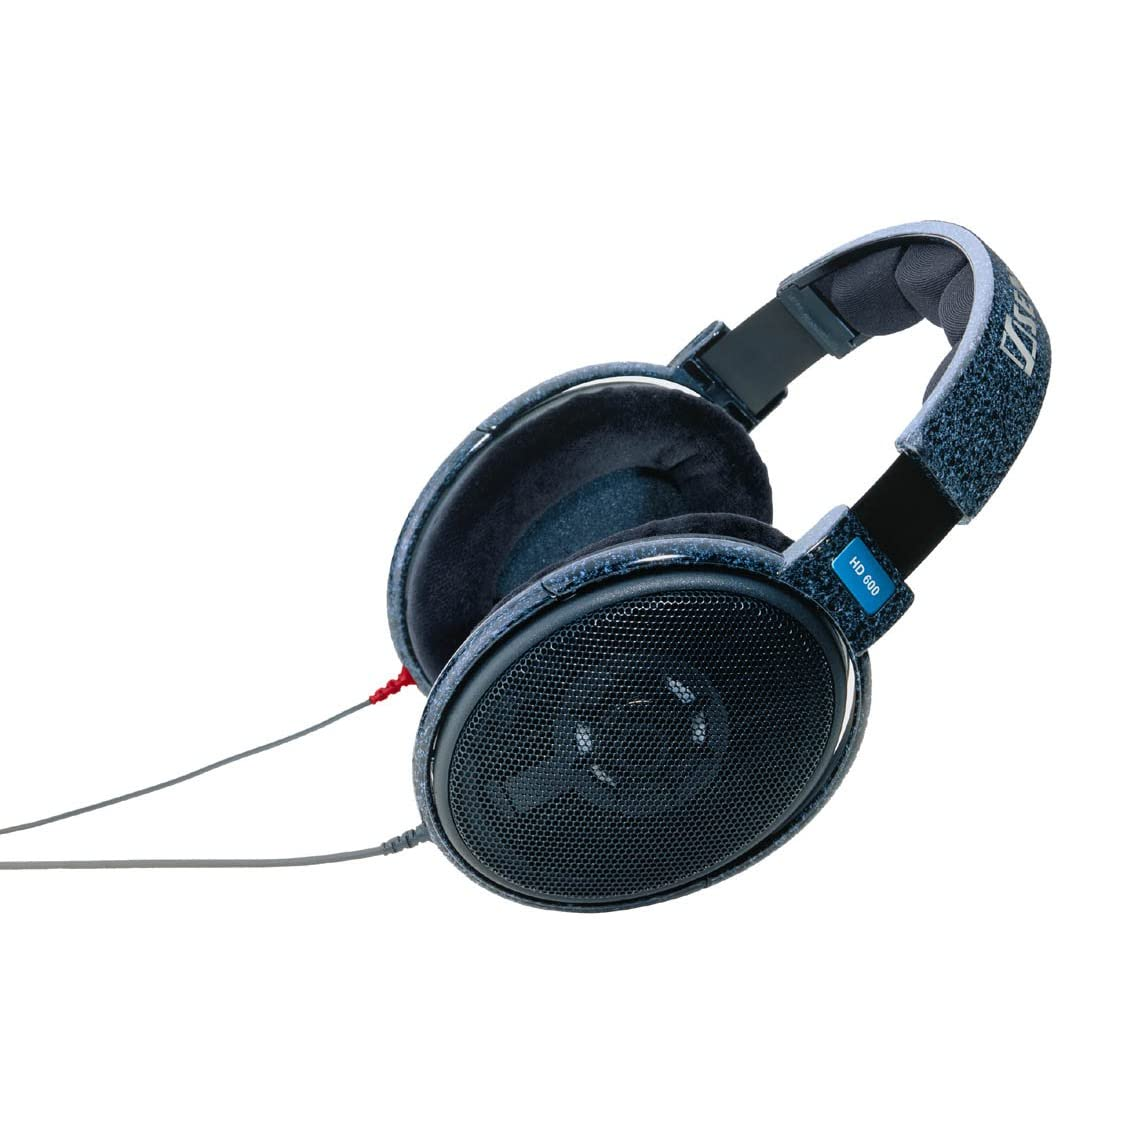 Sennheiser  HD600 Open Dynamic Hi-Fi Professional Stereo Headphones (Black)